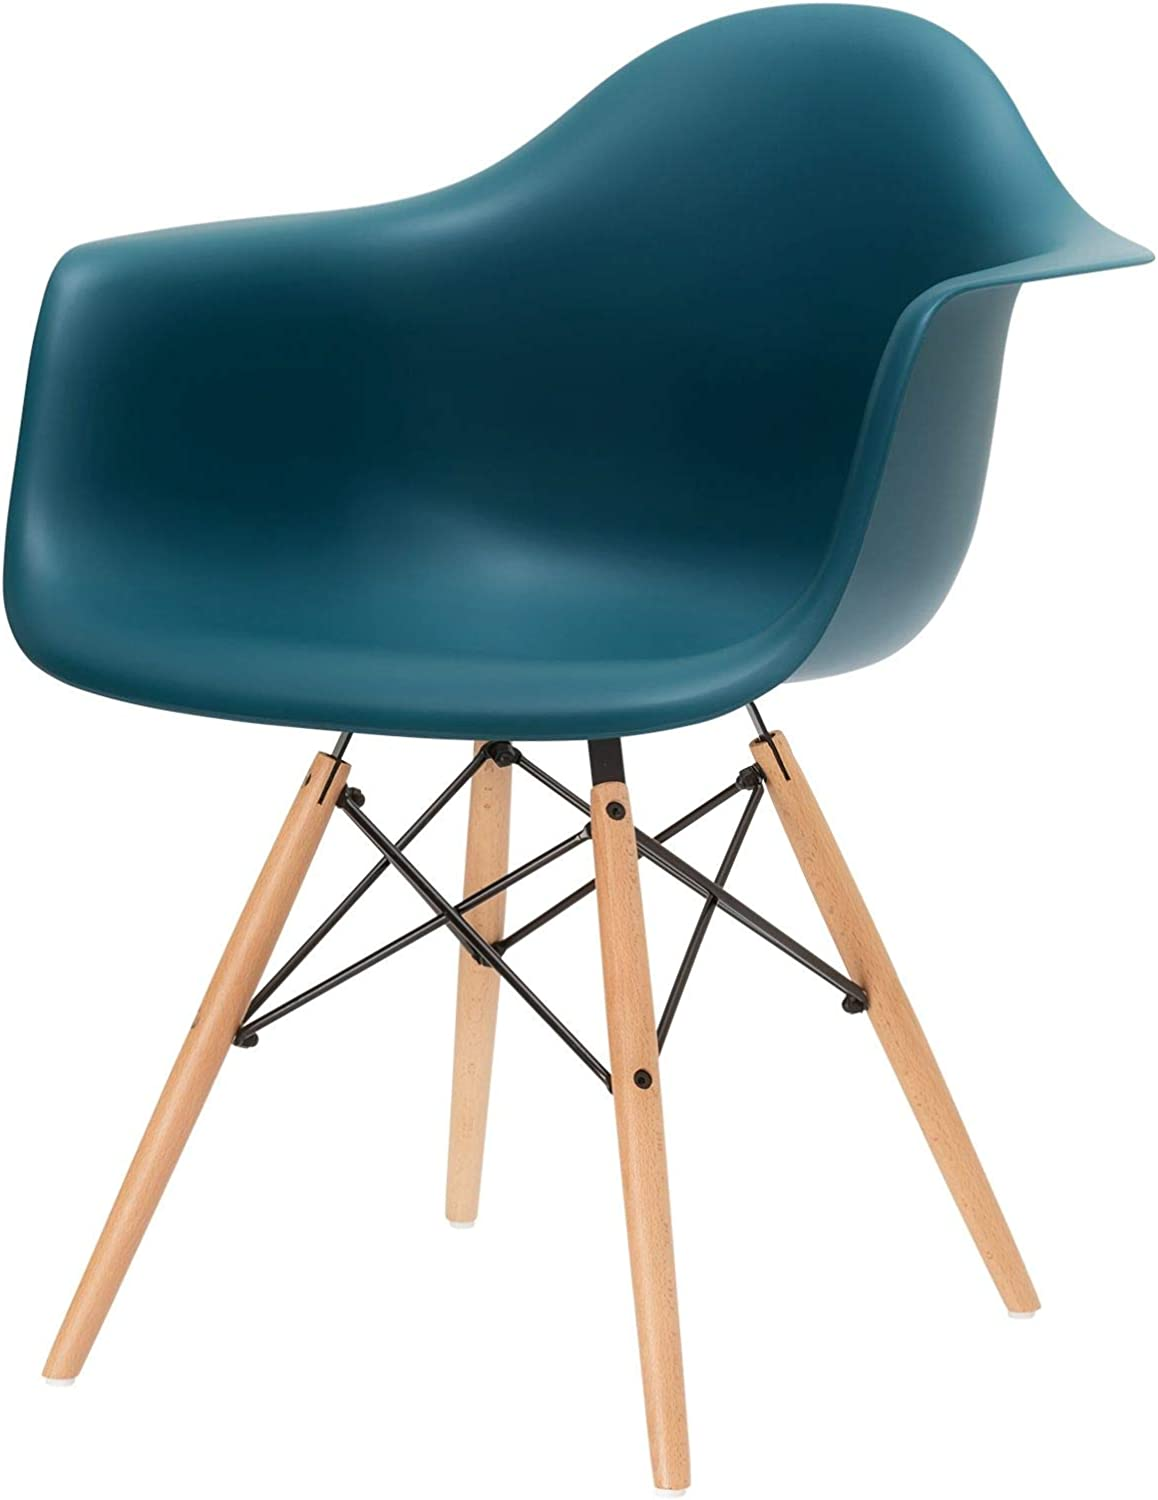 BRT-Style Vortex New product At the price of surprise type arm n Model teal 16294-16116